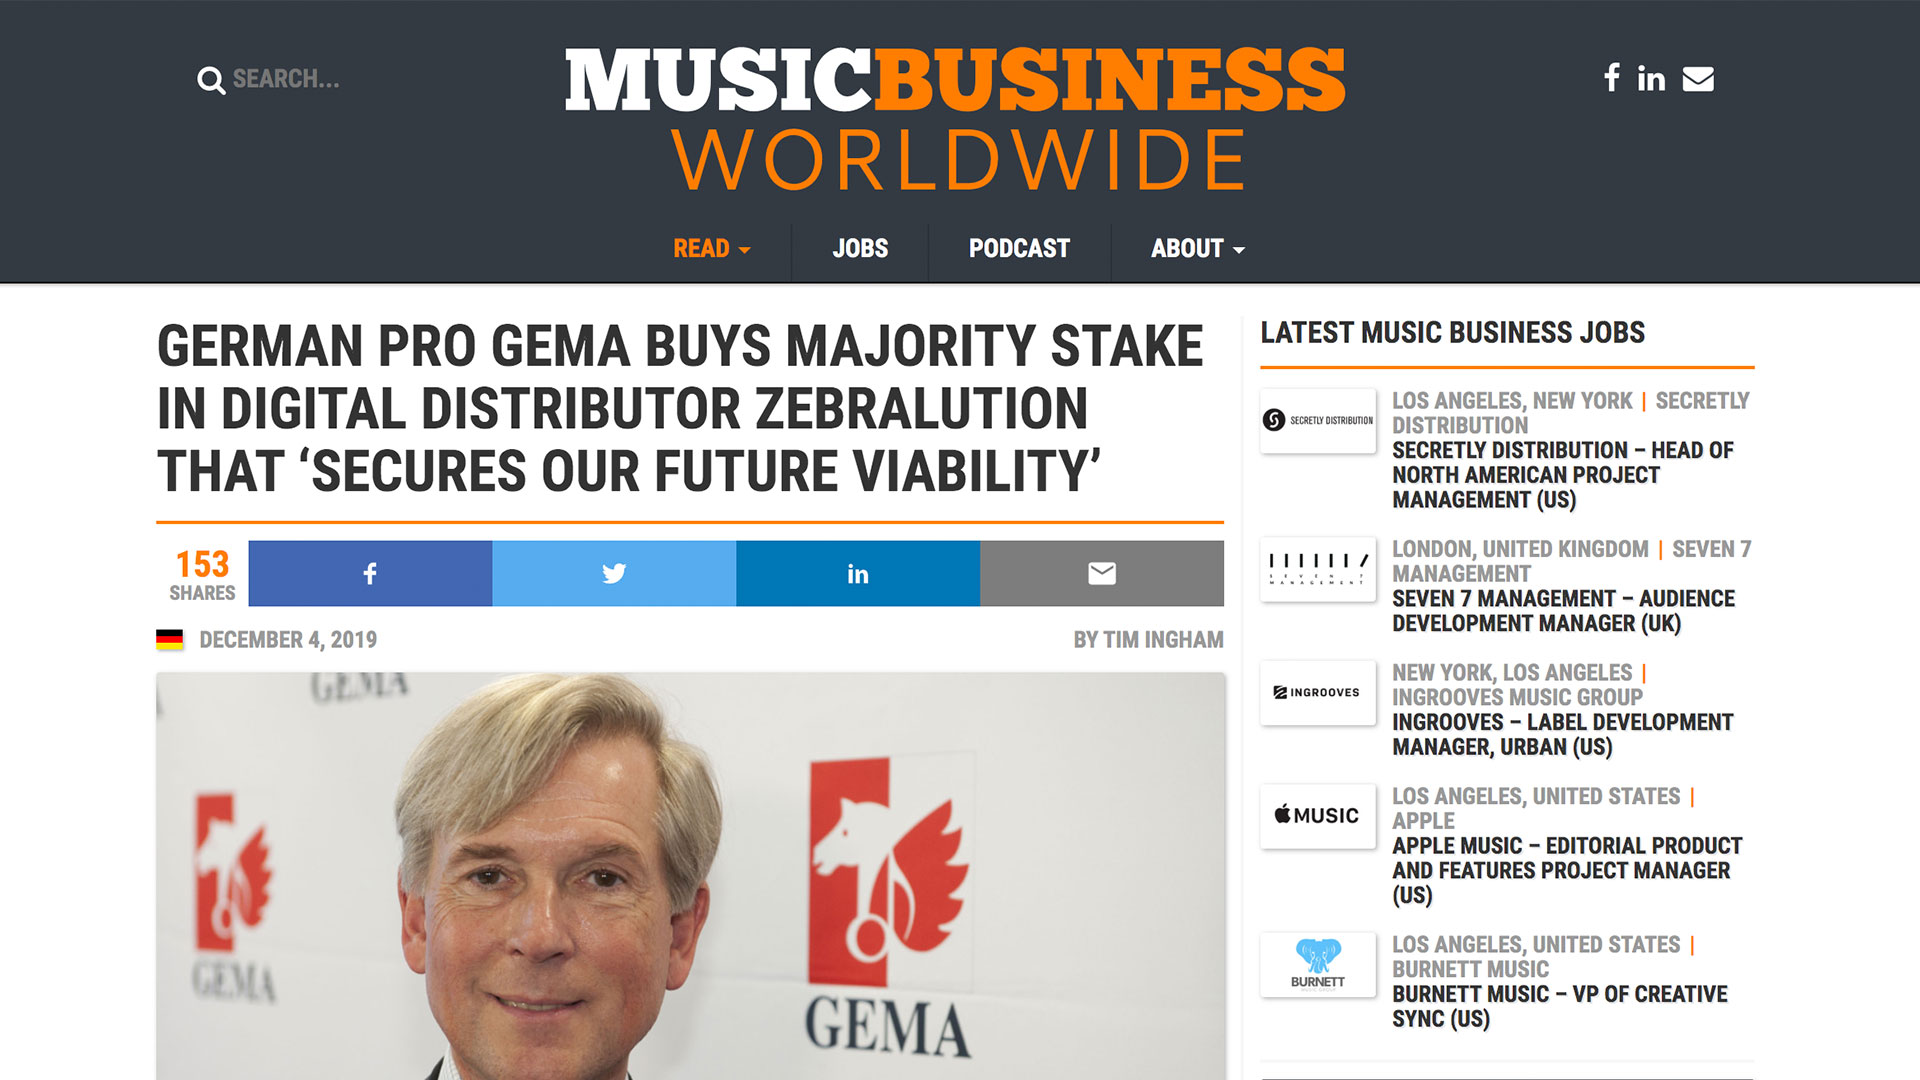 Fairness Rocks News GERMAN PRO GEMA BUYS MAJORITY STAKE IN DIGITAL DISTRIBUTOR ZEBRALUTION THAT 'SECURES OUR FUTURE VIABILITY'